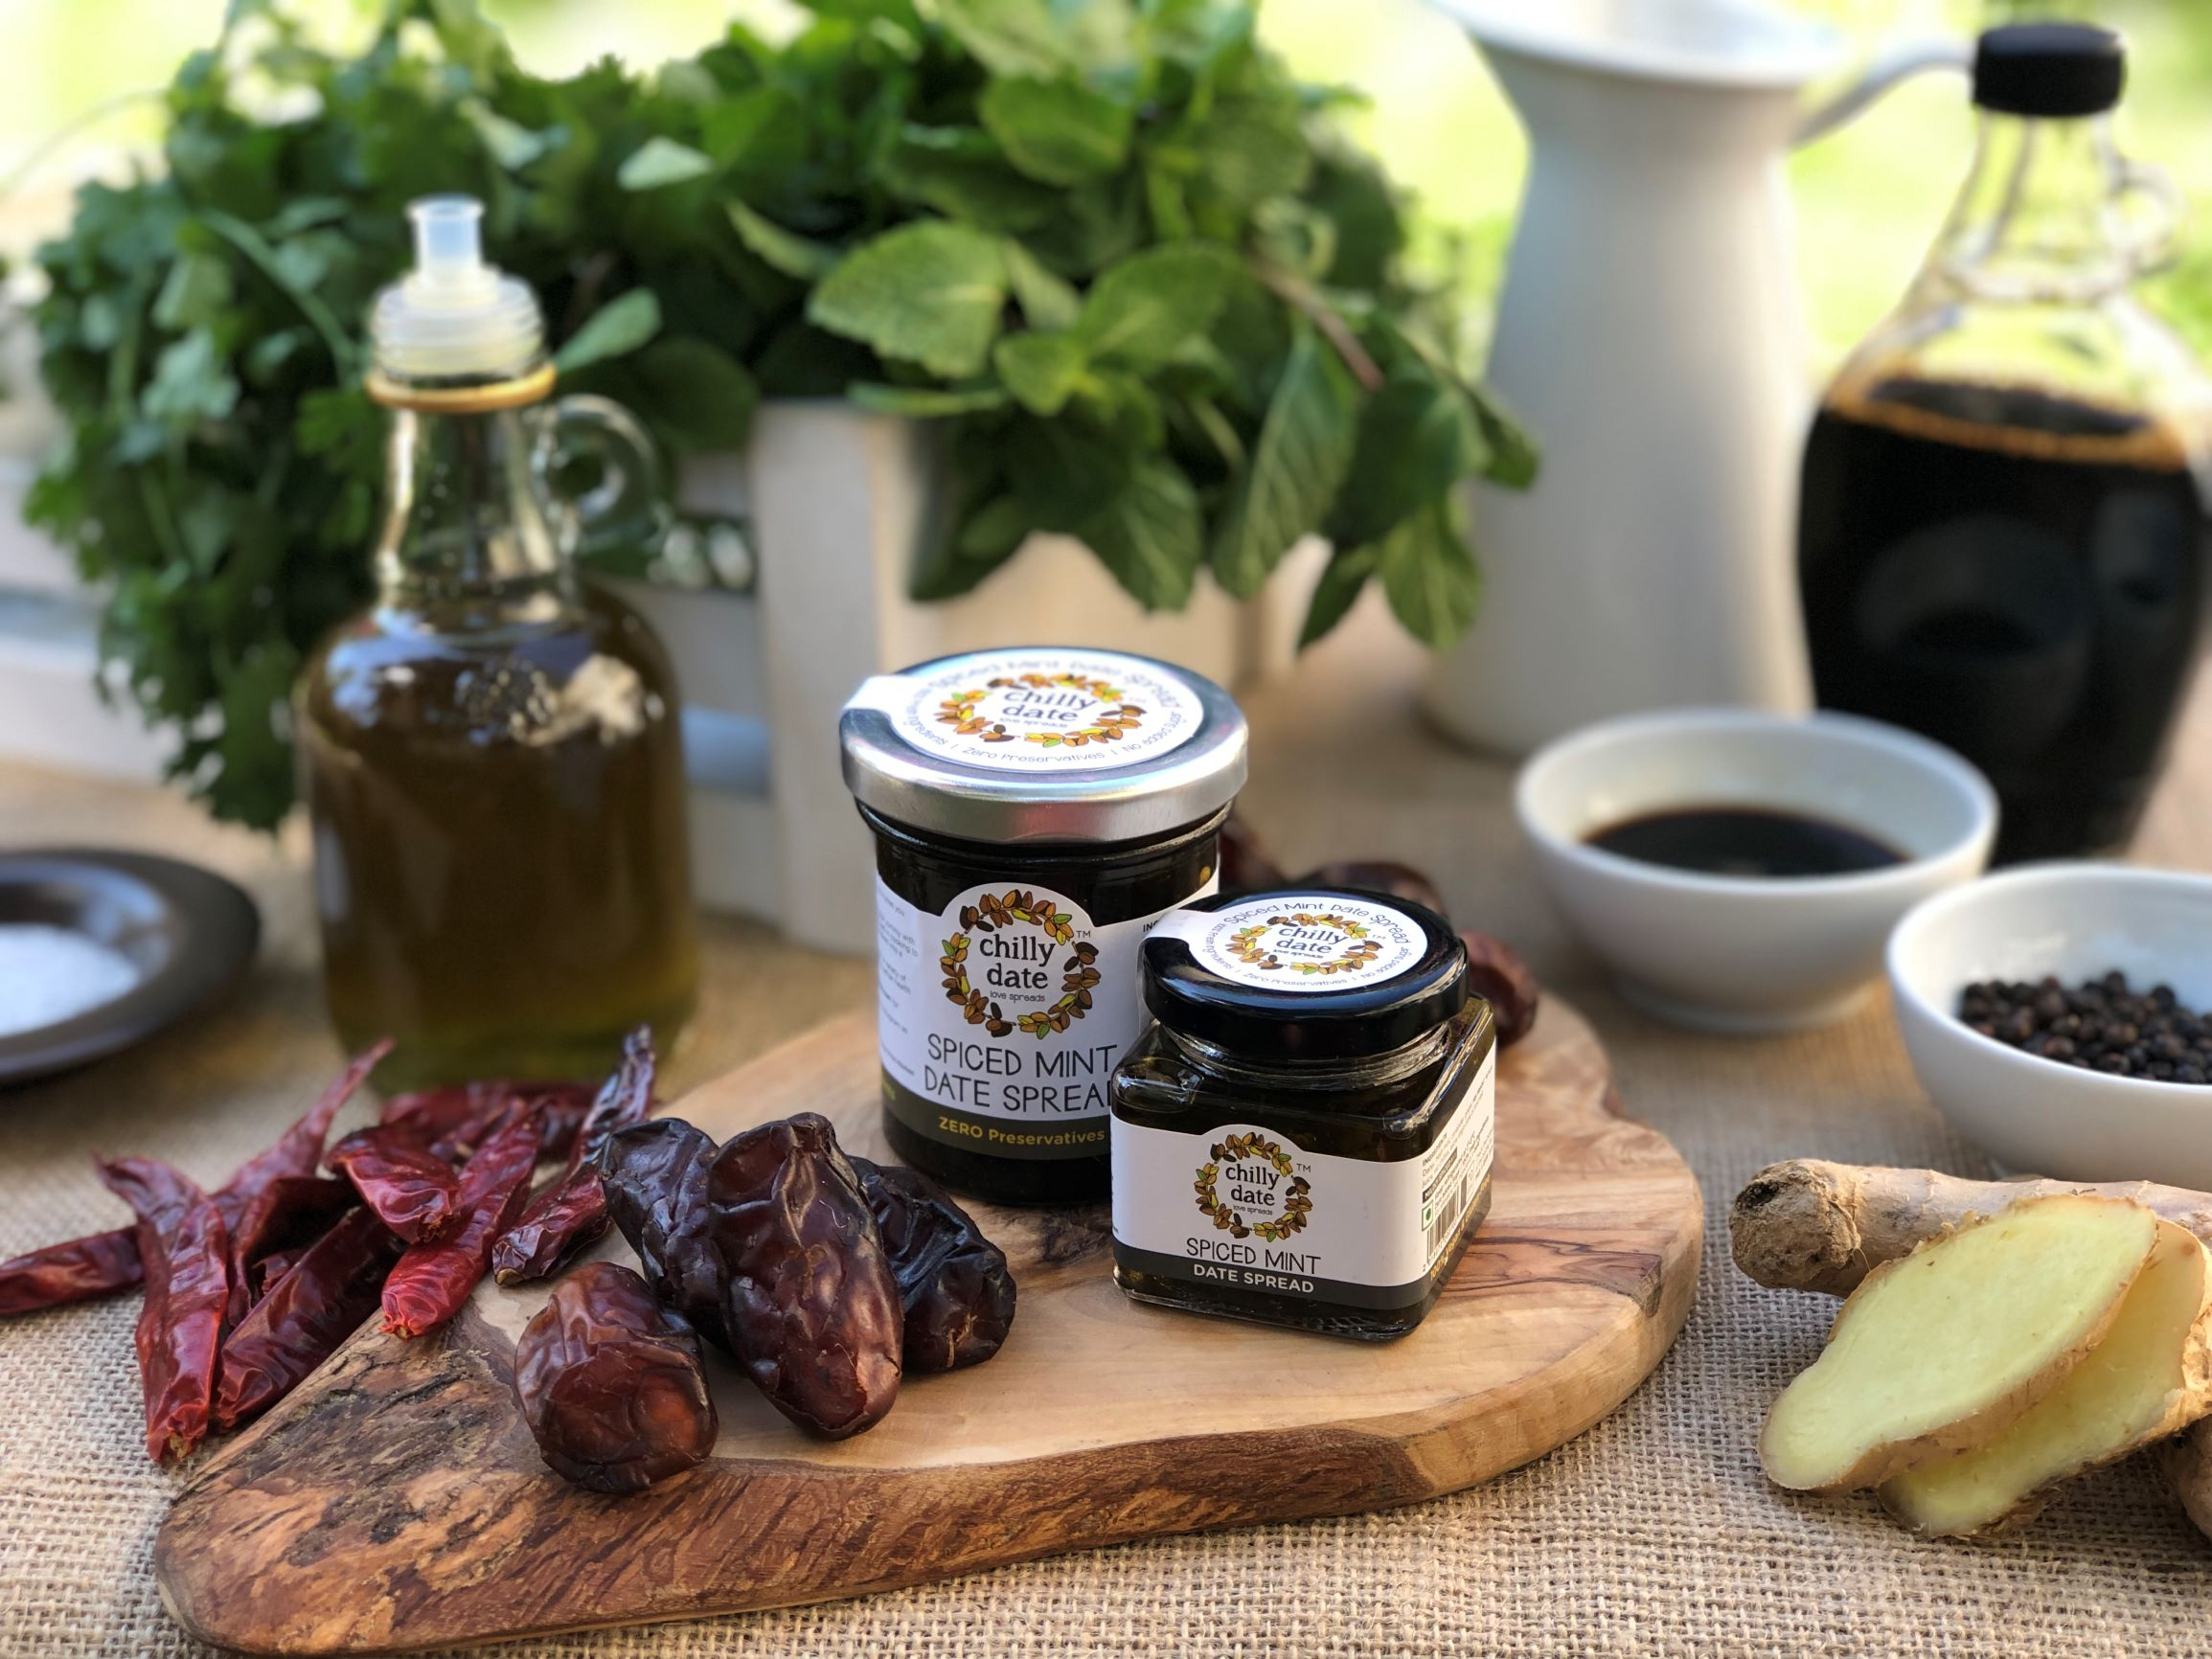 Spiced Mint Date Spread